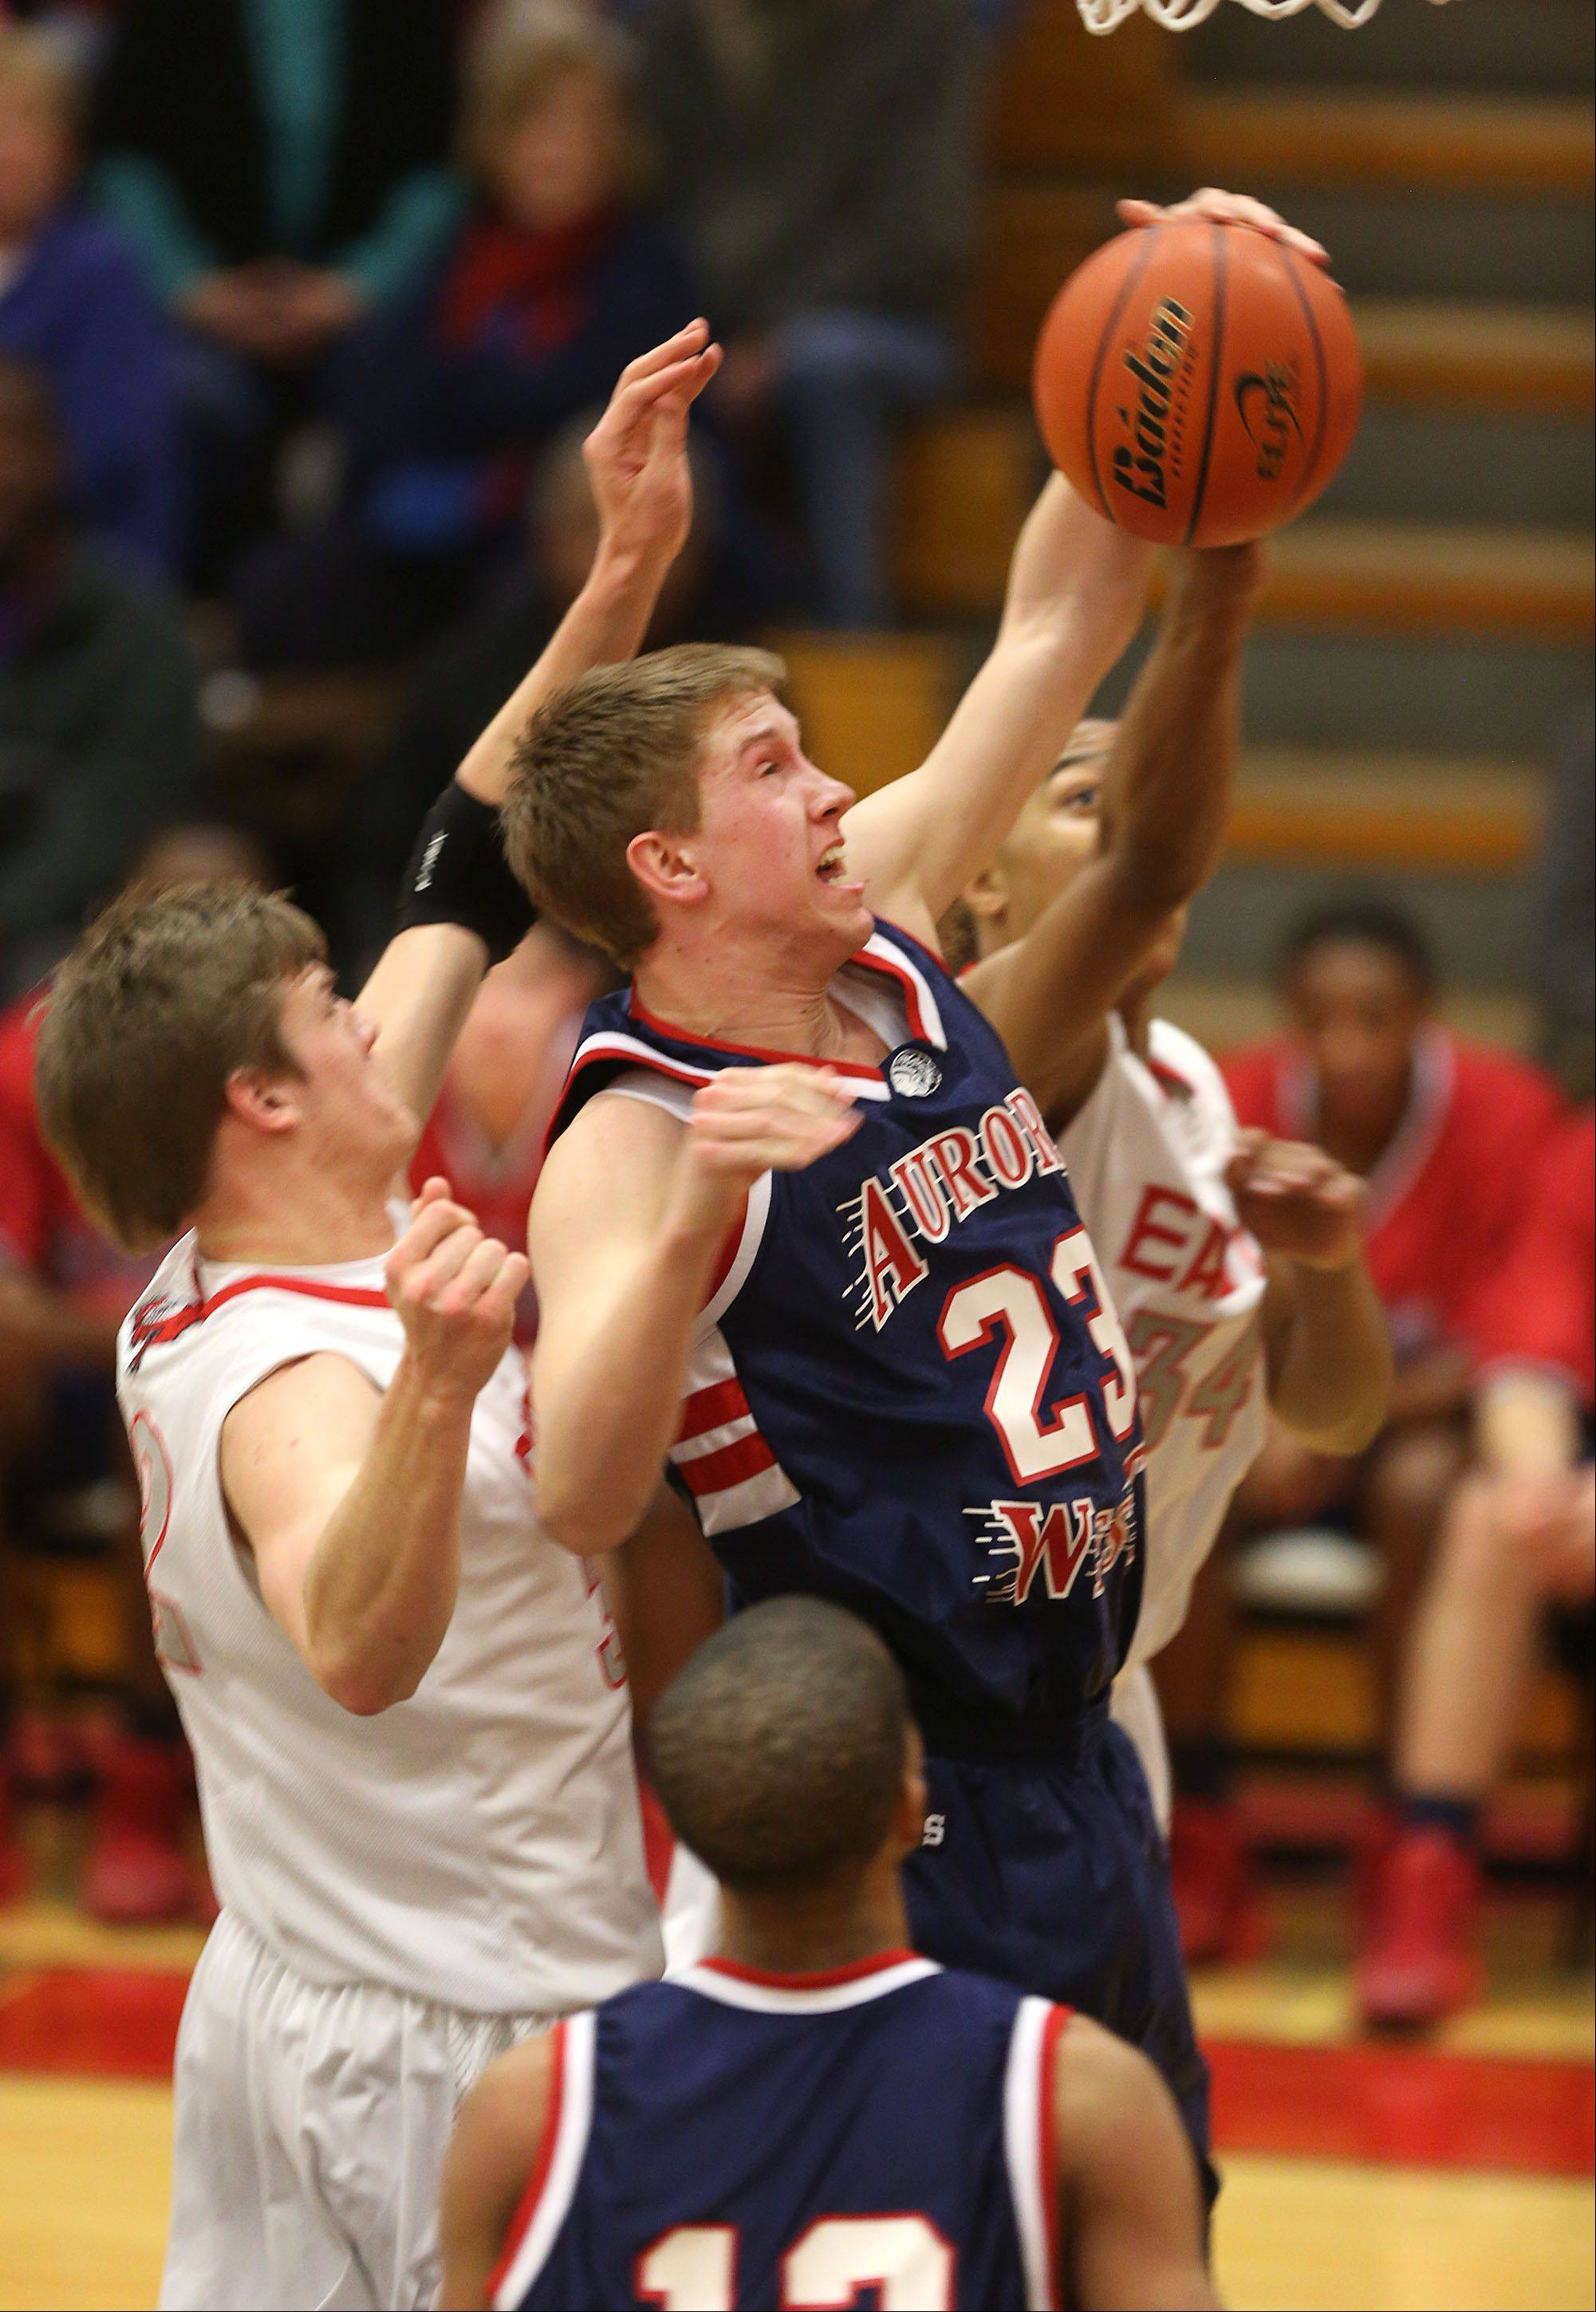 West Aurora's Tommy Koth grabs a defensive rebound against Glenbard East.